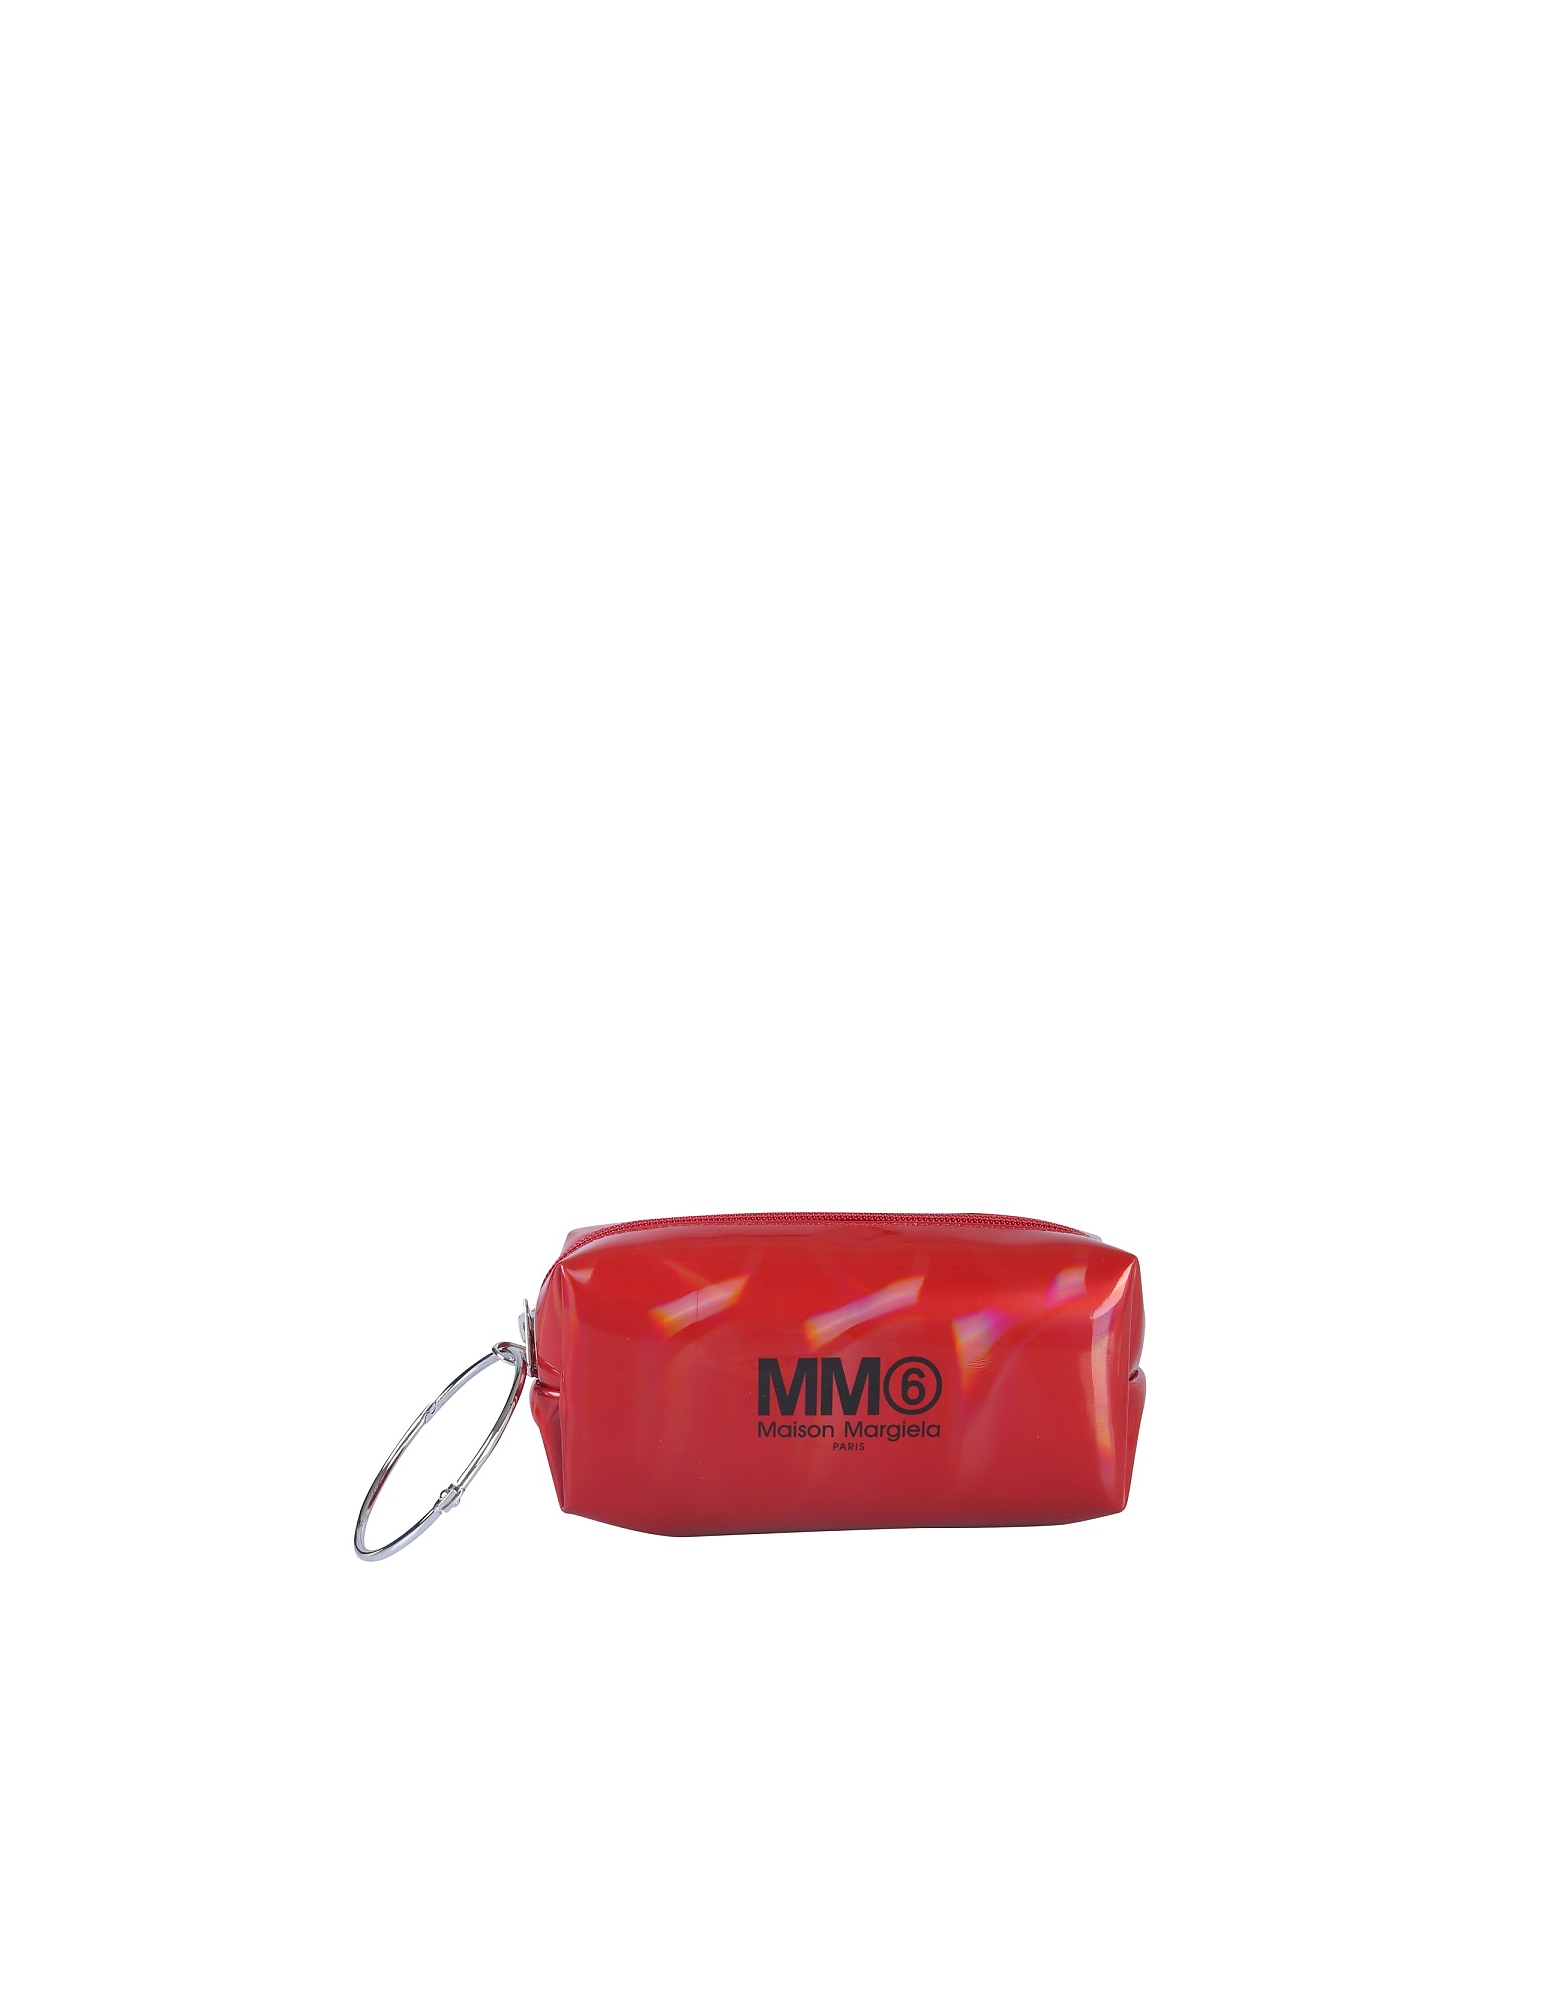 MM6 Maison Martin Margiela Designer Handbags, Clutch With Logo And Ring